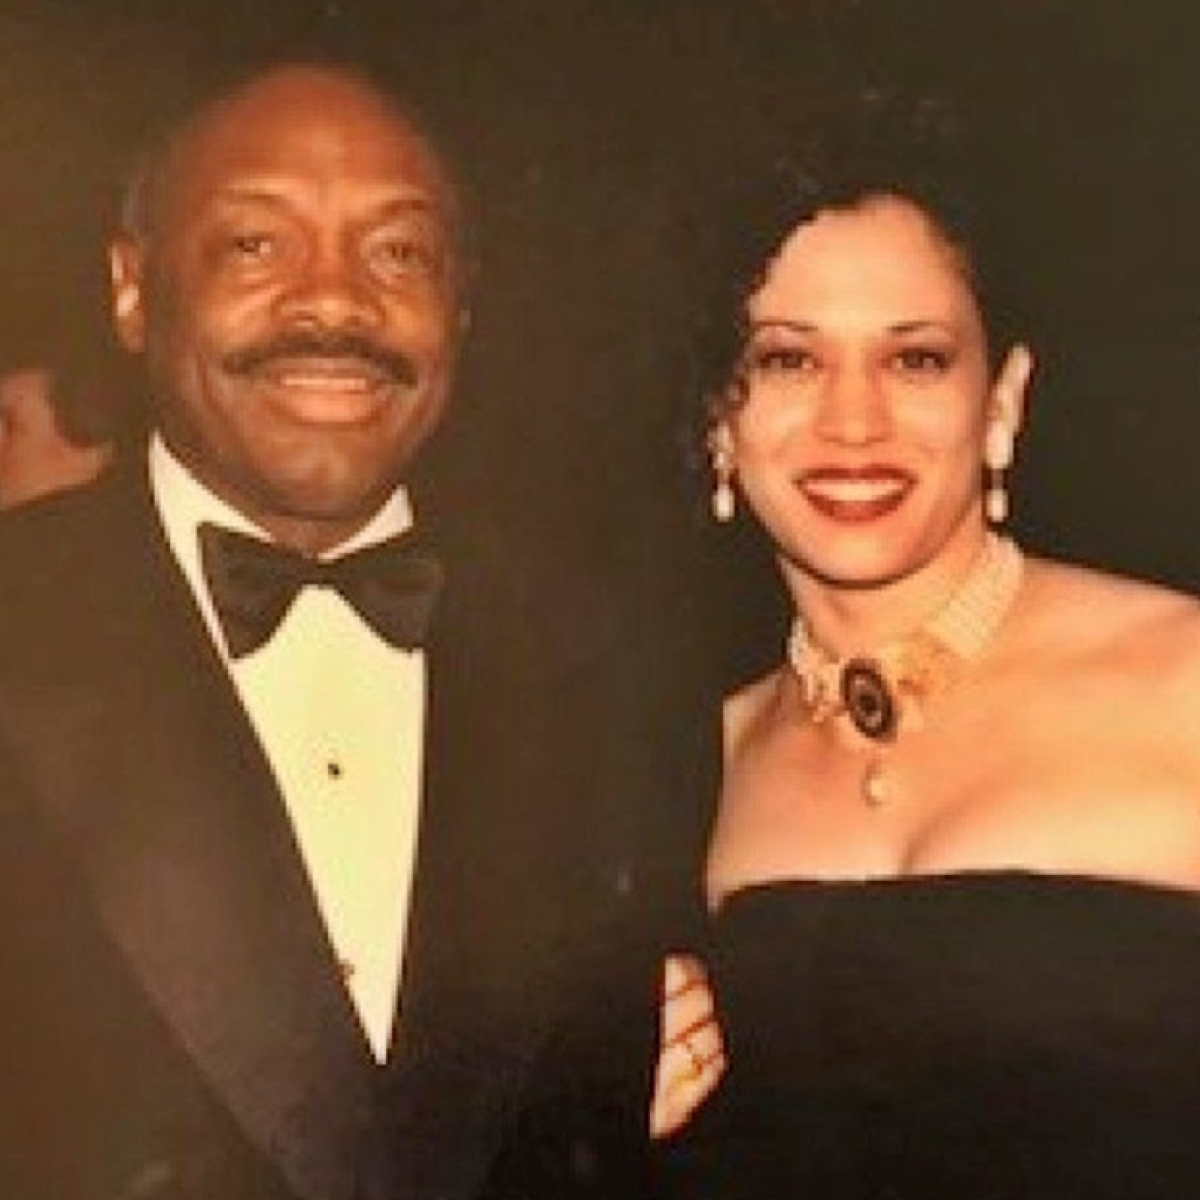 Kamala Harris had an affair with a 60-year-old married man when she was 29 who 'launched her career'